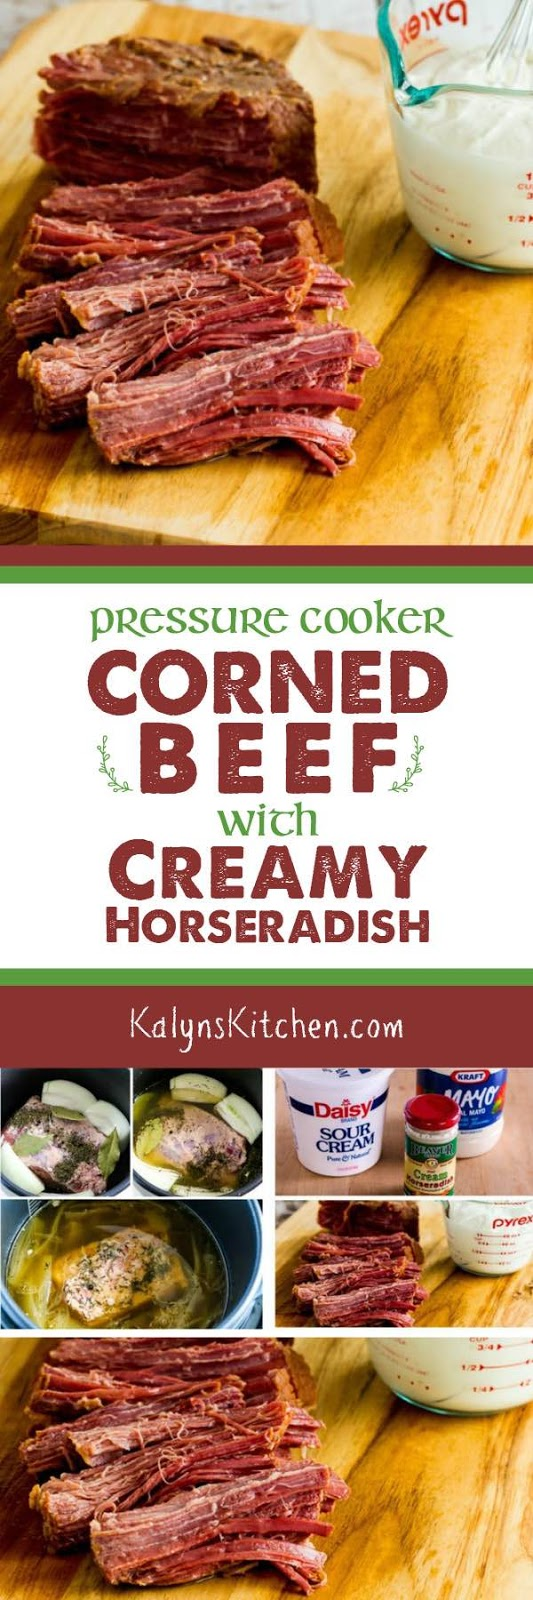 how to cook corned silverside in pressure cooker